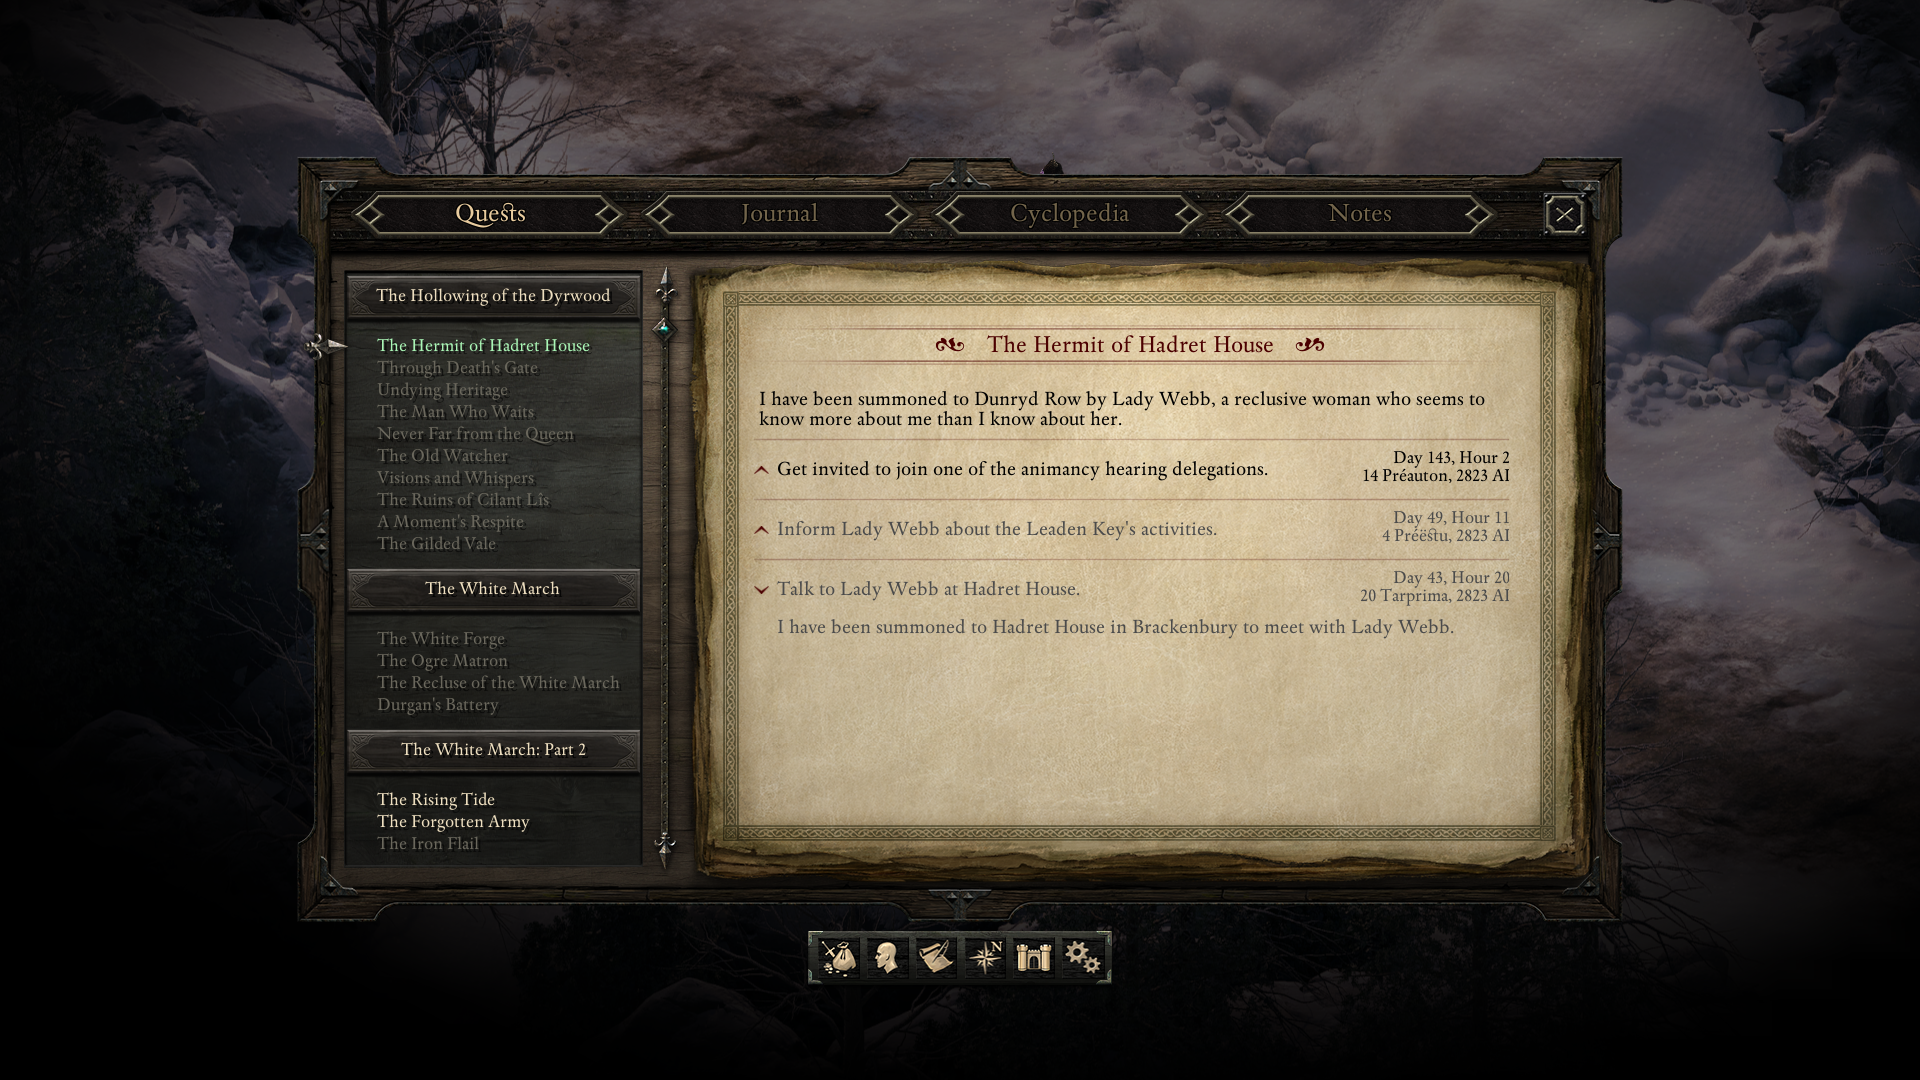 Pillars of Eternity quests - Official Pillars of Eternity Wiki